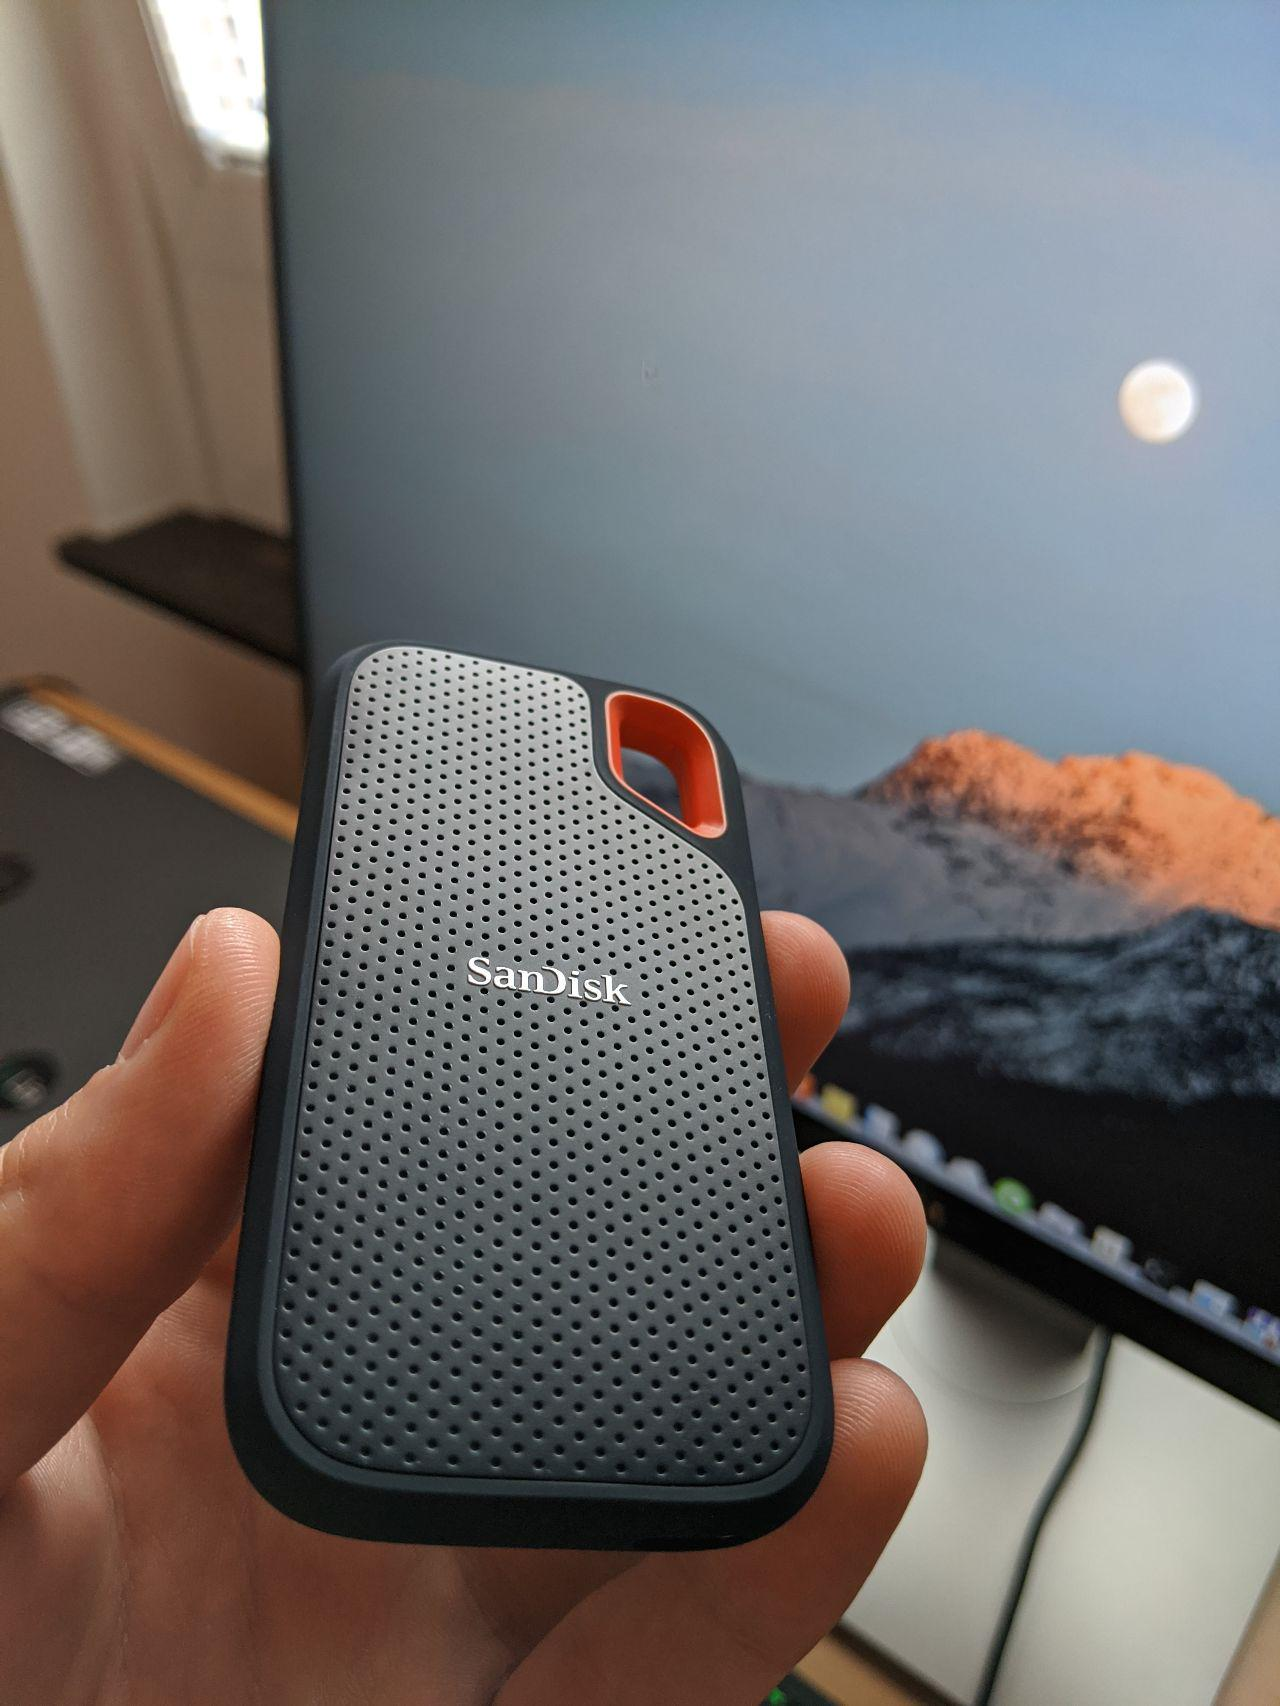 Treat Your External Hard Drive As Your Local Cloud